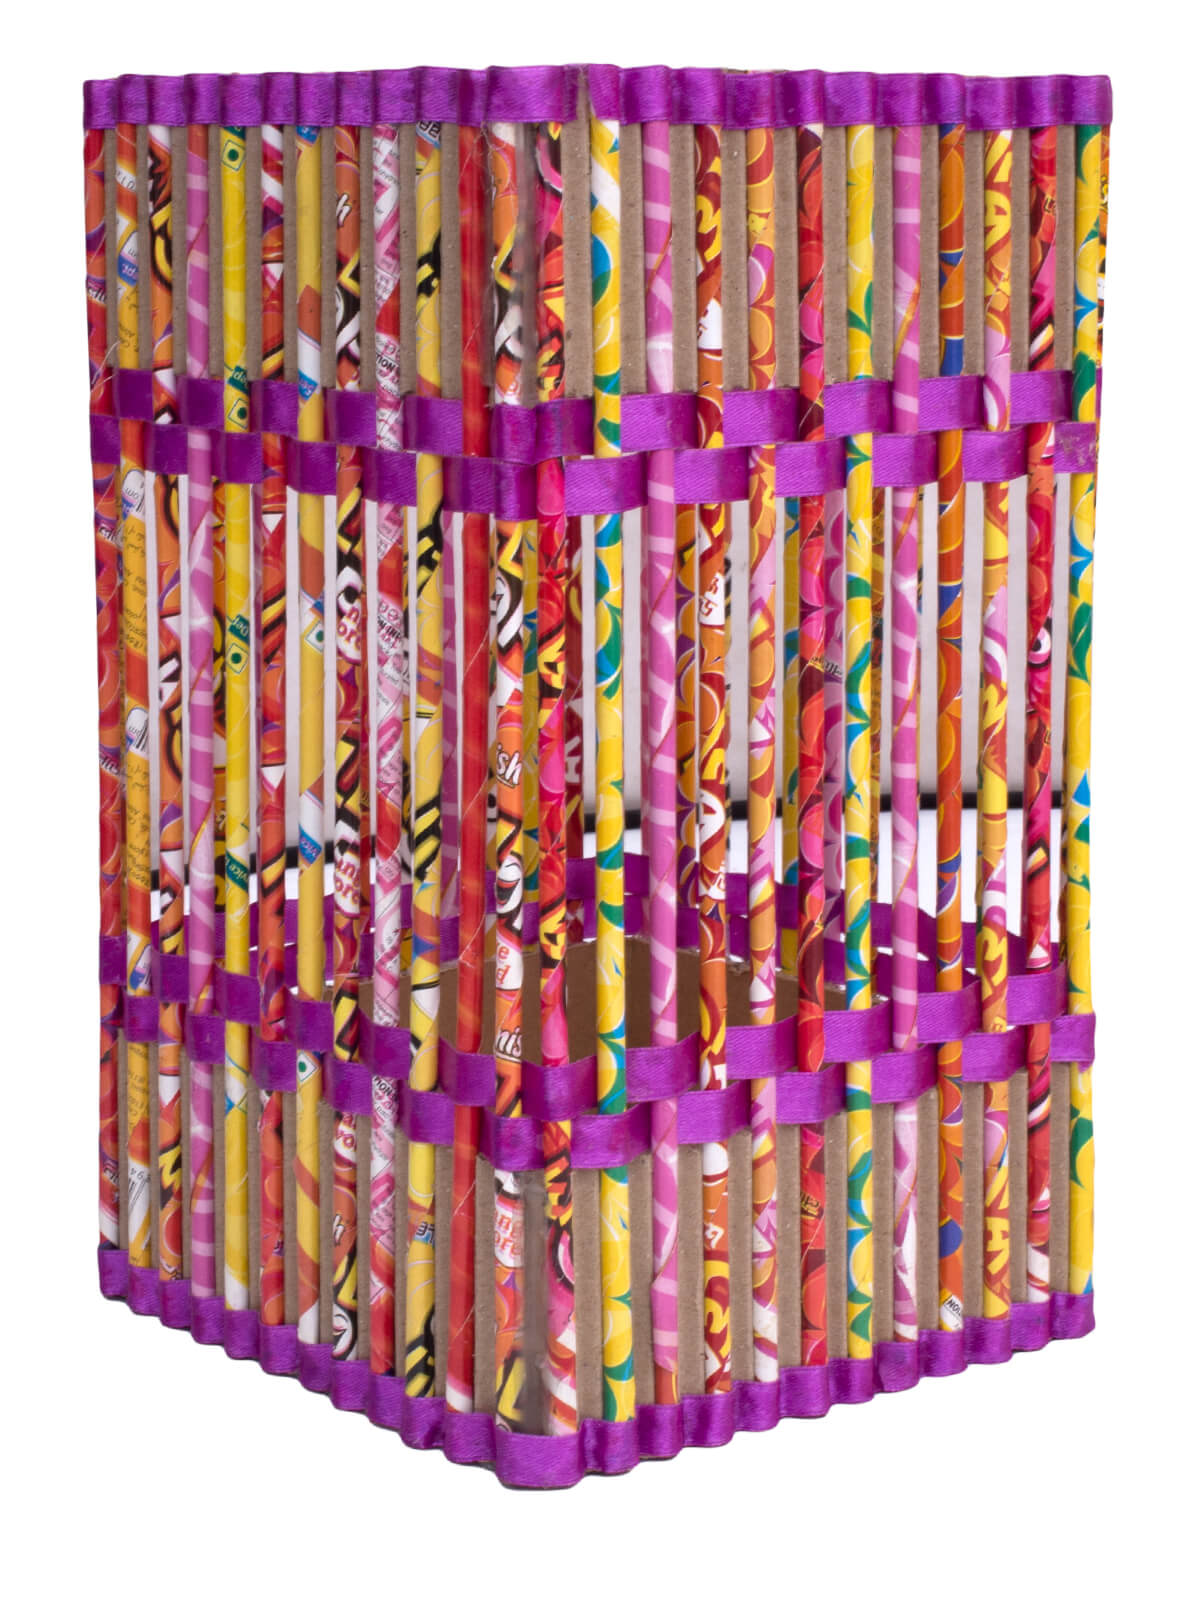 Eco-Friendly and Recycled Handmade Paper Lamp Shade